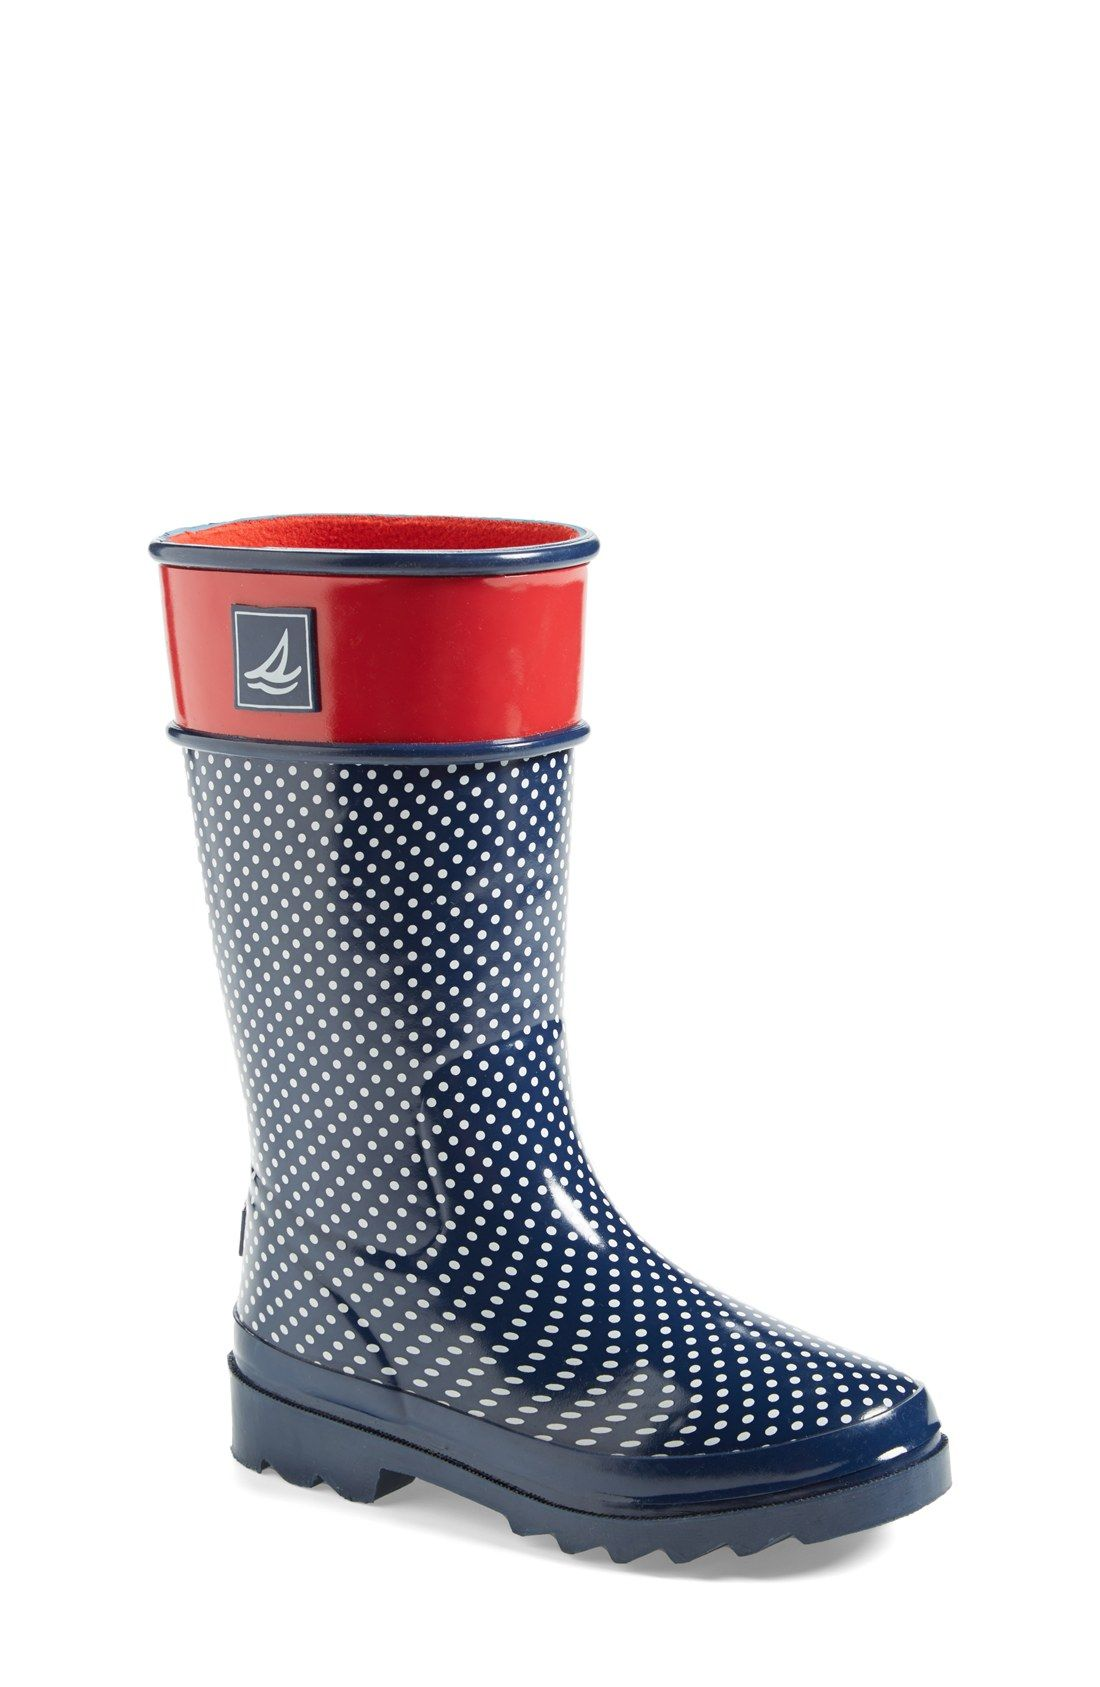 Toddler Black Rubber Boots